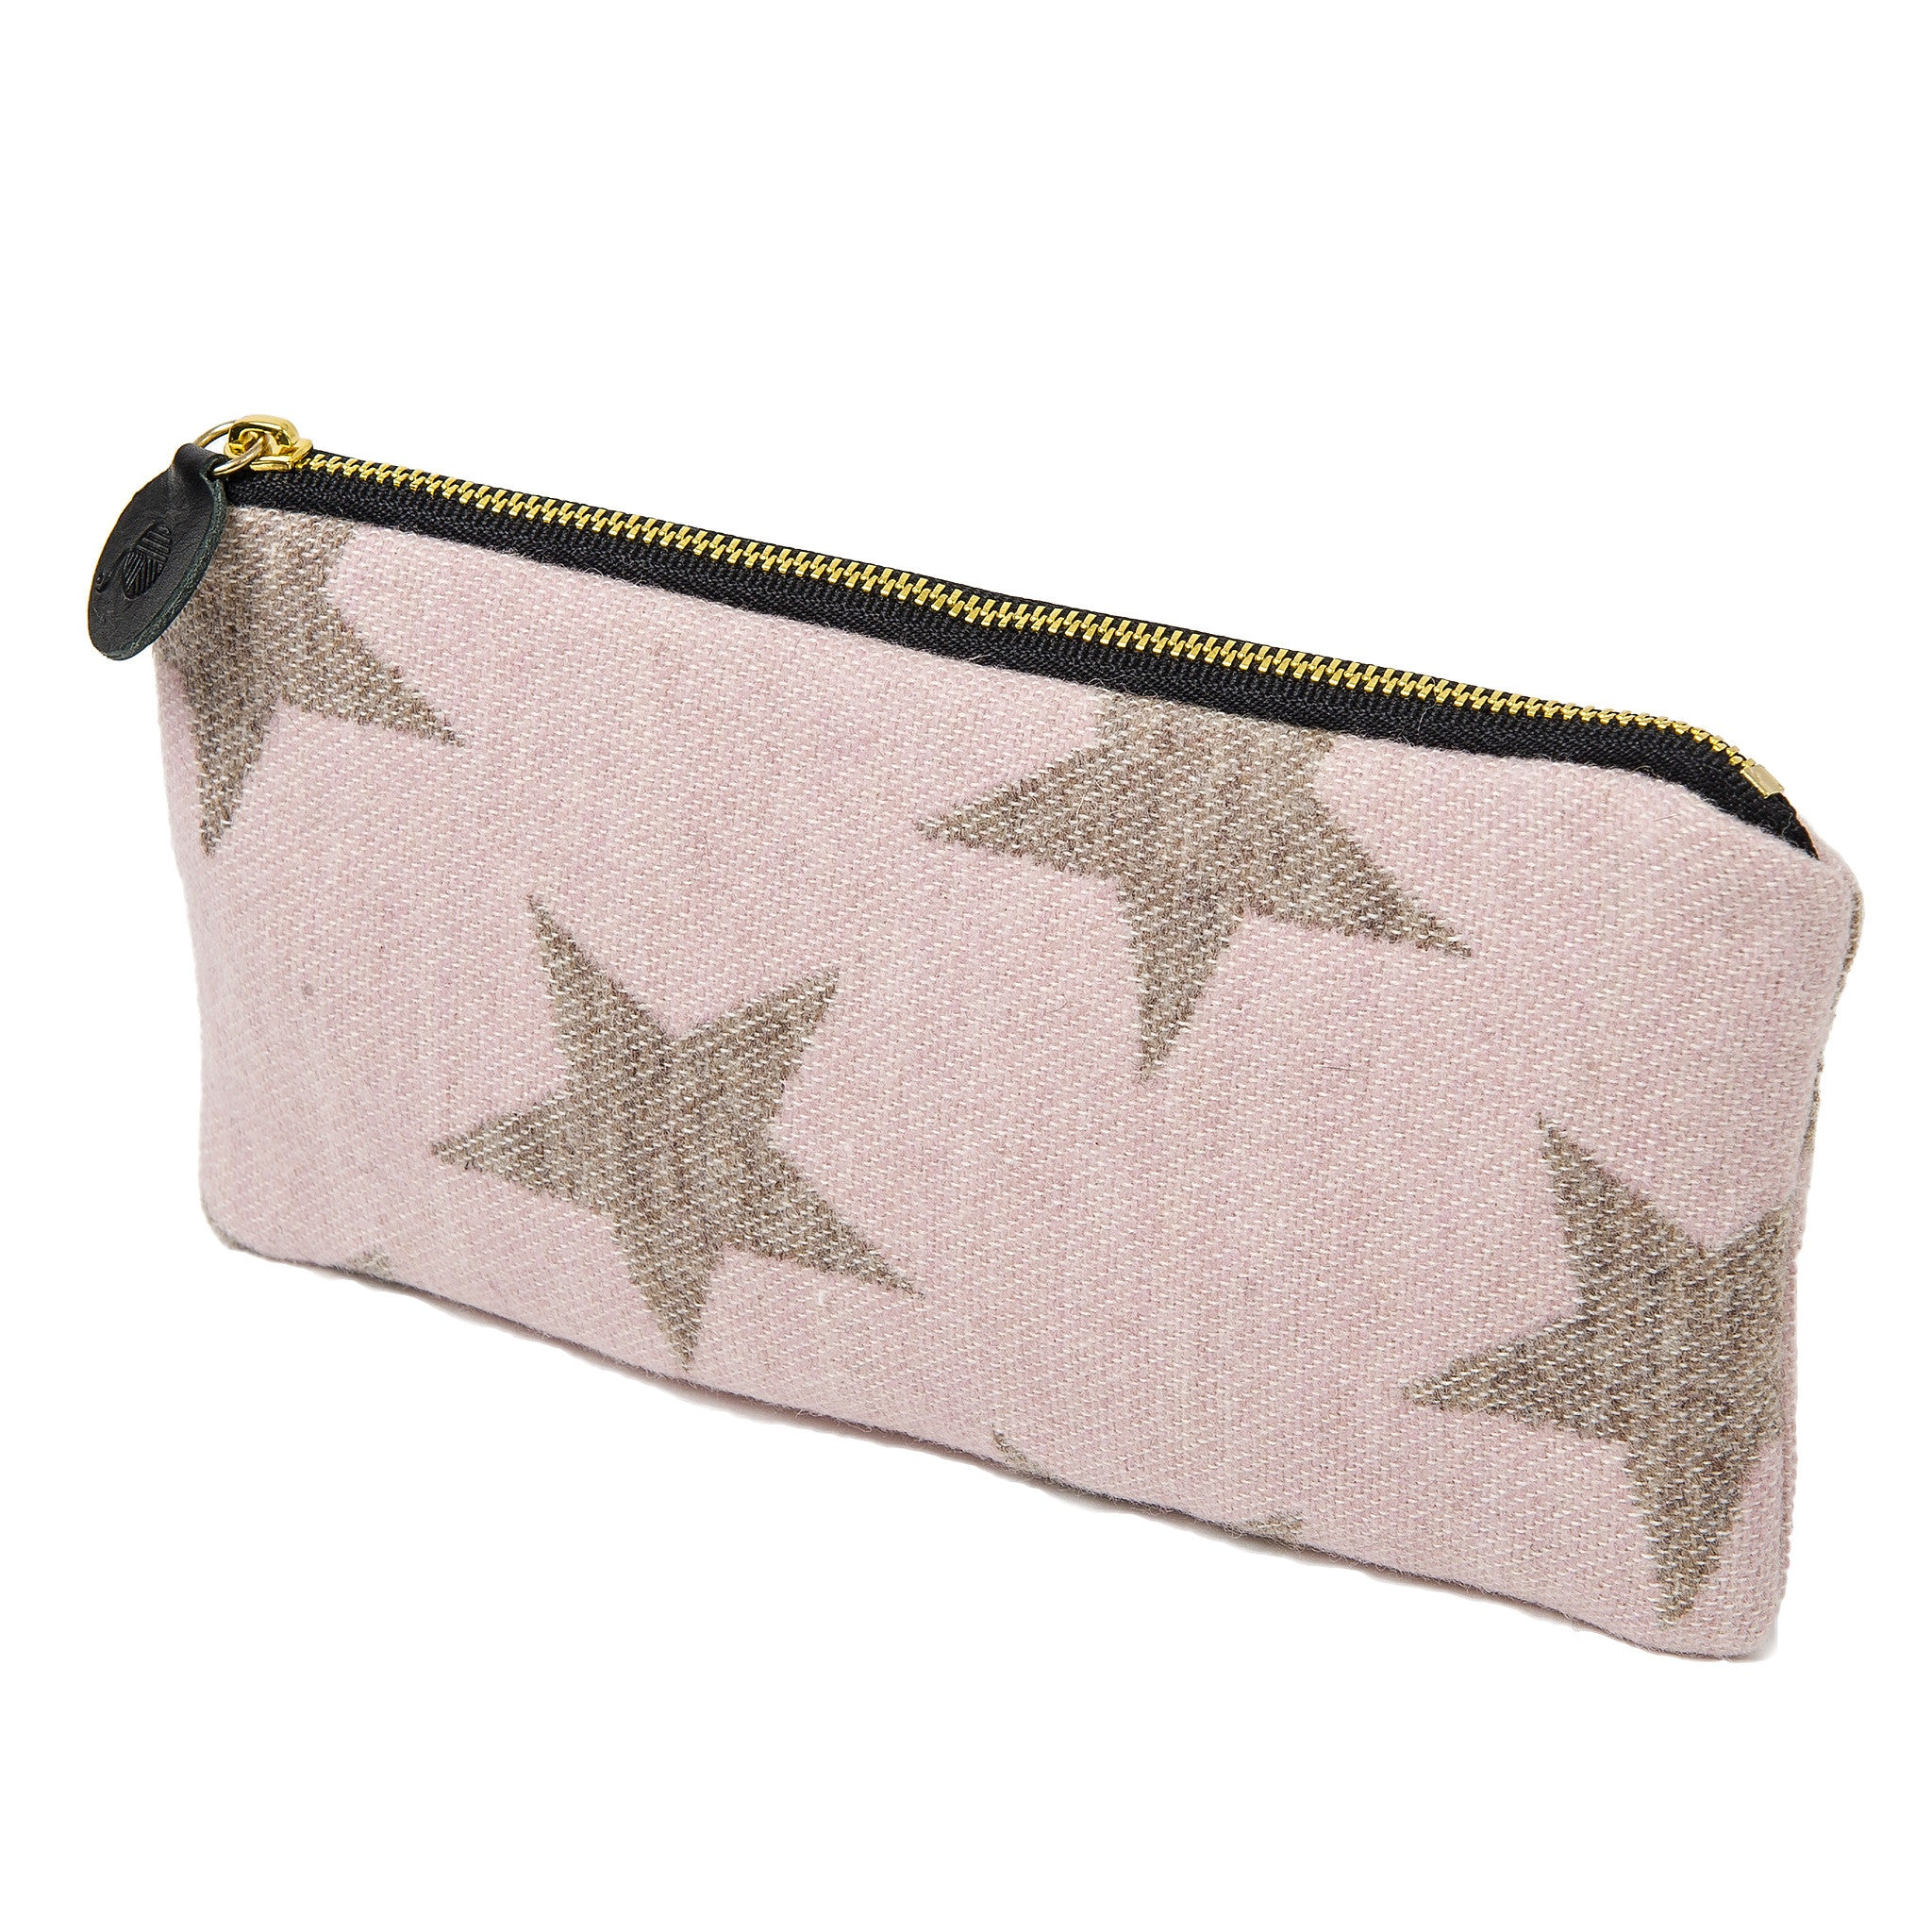 Merino Lambswool Zip Purse Antares Star Mushroom on Pink - Tori Murphy